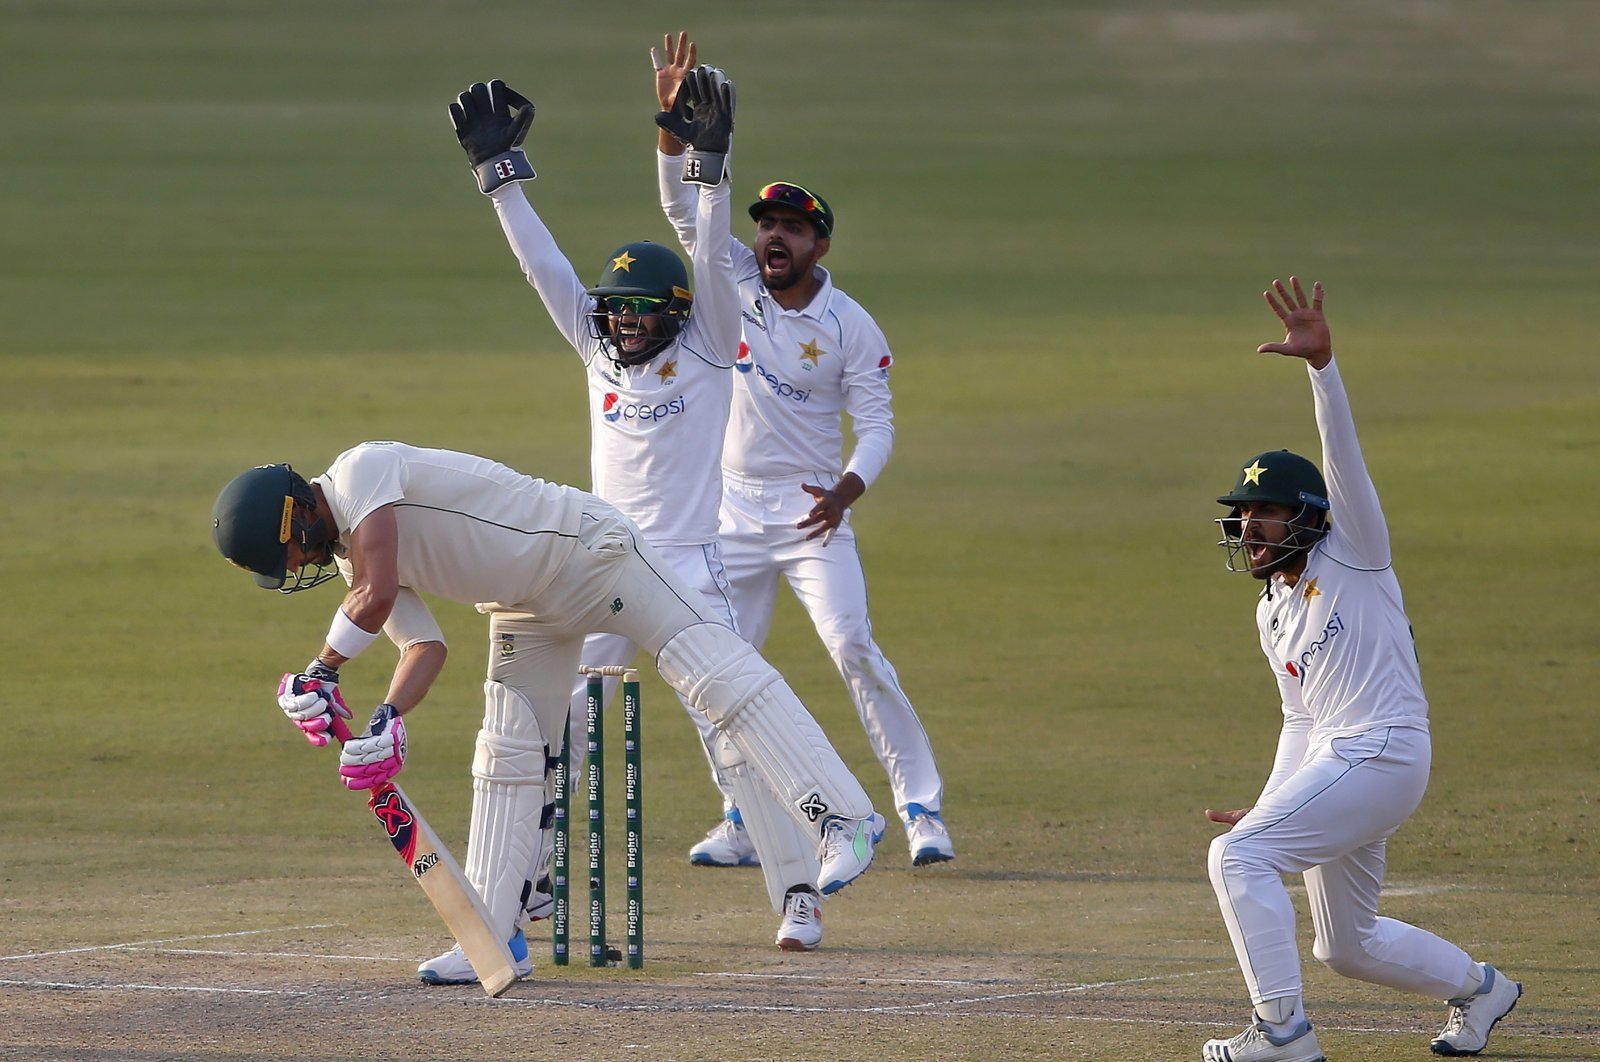 Pakistan's Mohammad Rizwan (C), Babar Azam (2nd R) and Imran Butt (R) appeal for an LBW out of South Africa's Faf du Plessis (L), Day 3 of the first Test at the National Stadium, Karachi, Pakistan, Jan. 28, 2021. (AP Photo)